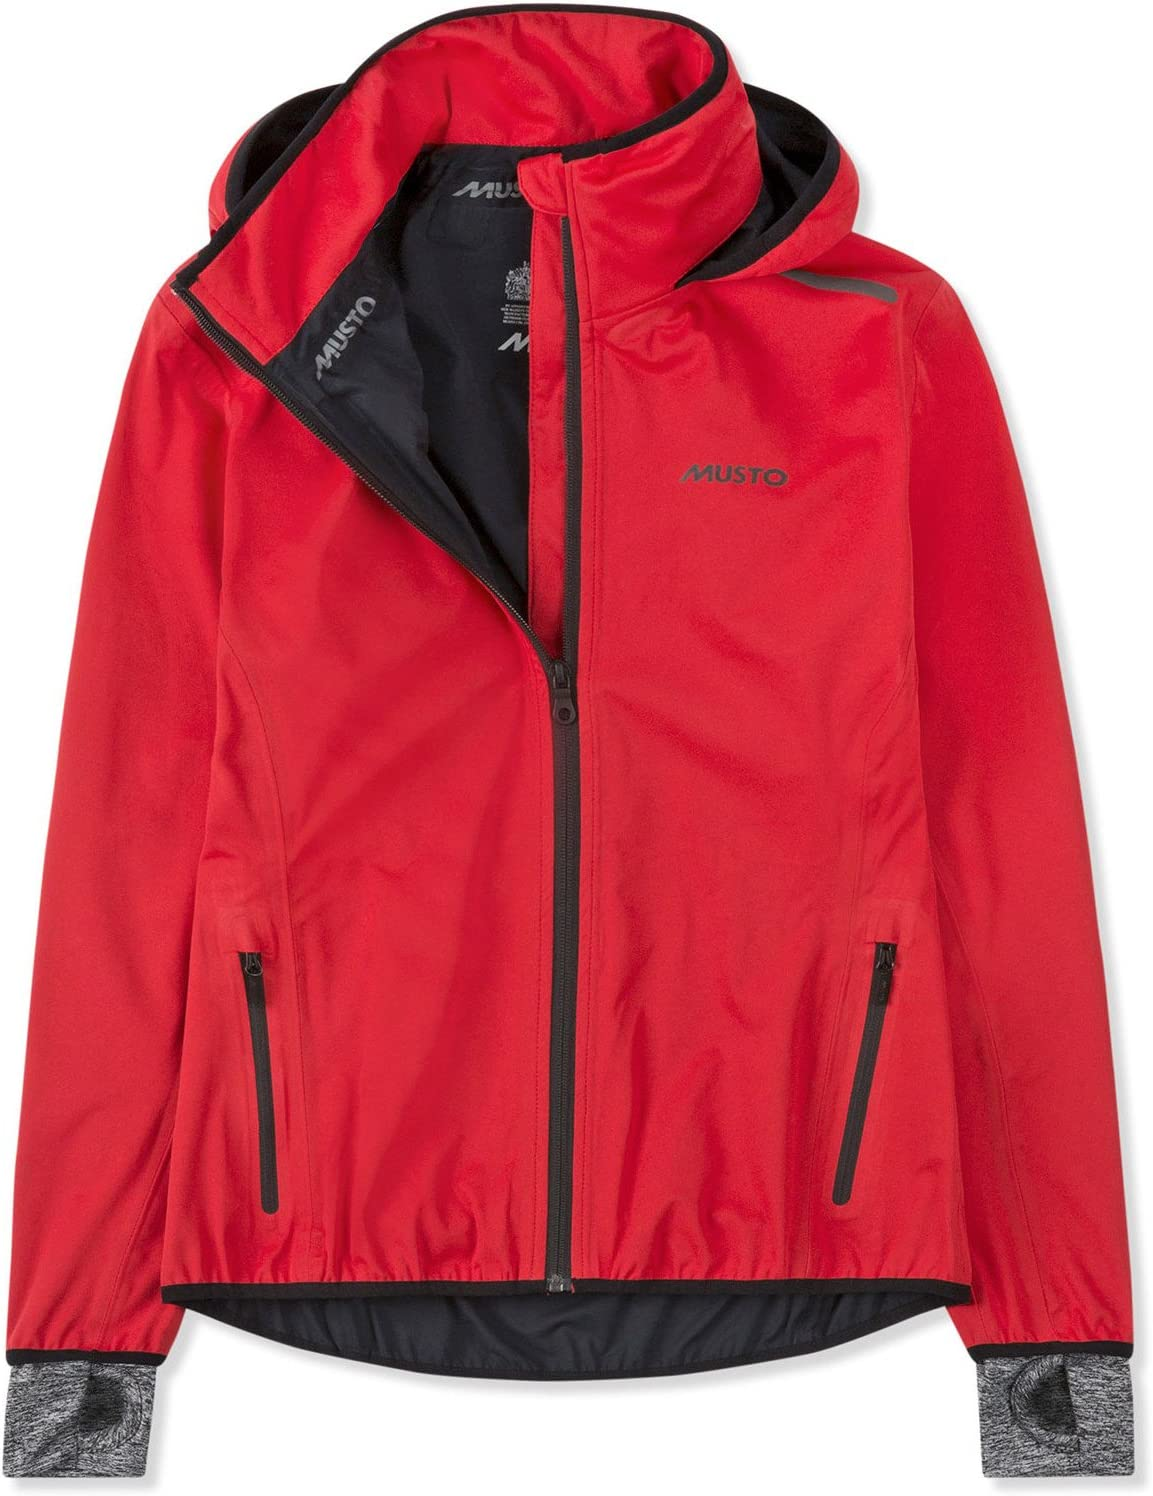 Musto Womens Arena BR2 Yacht Sailing and Boating Coat Jacket Red Easy Stretch Lightweight Waterproof Sprayproof